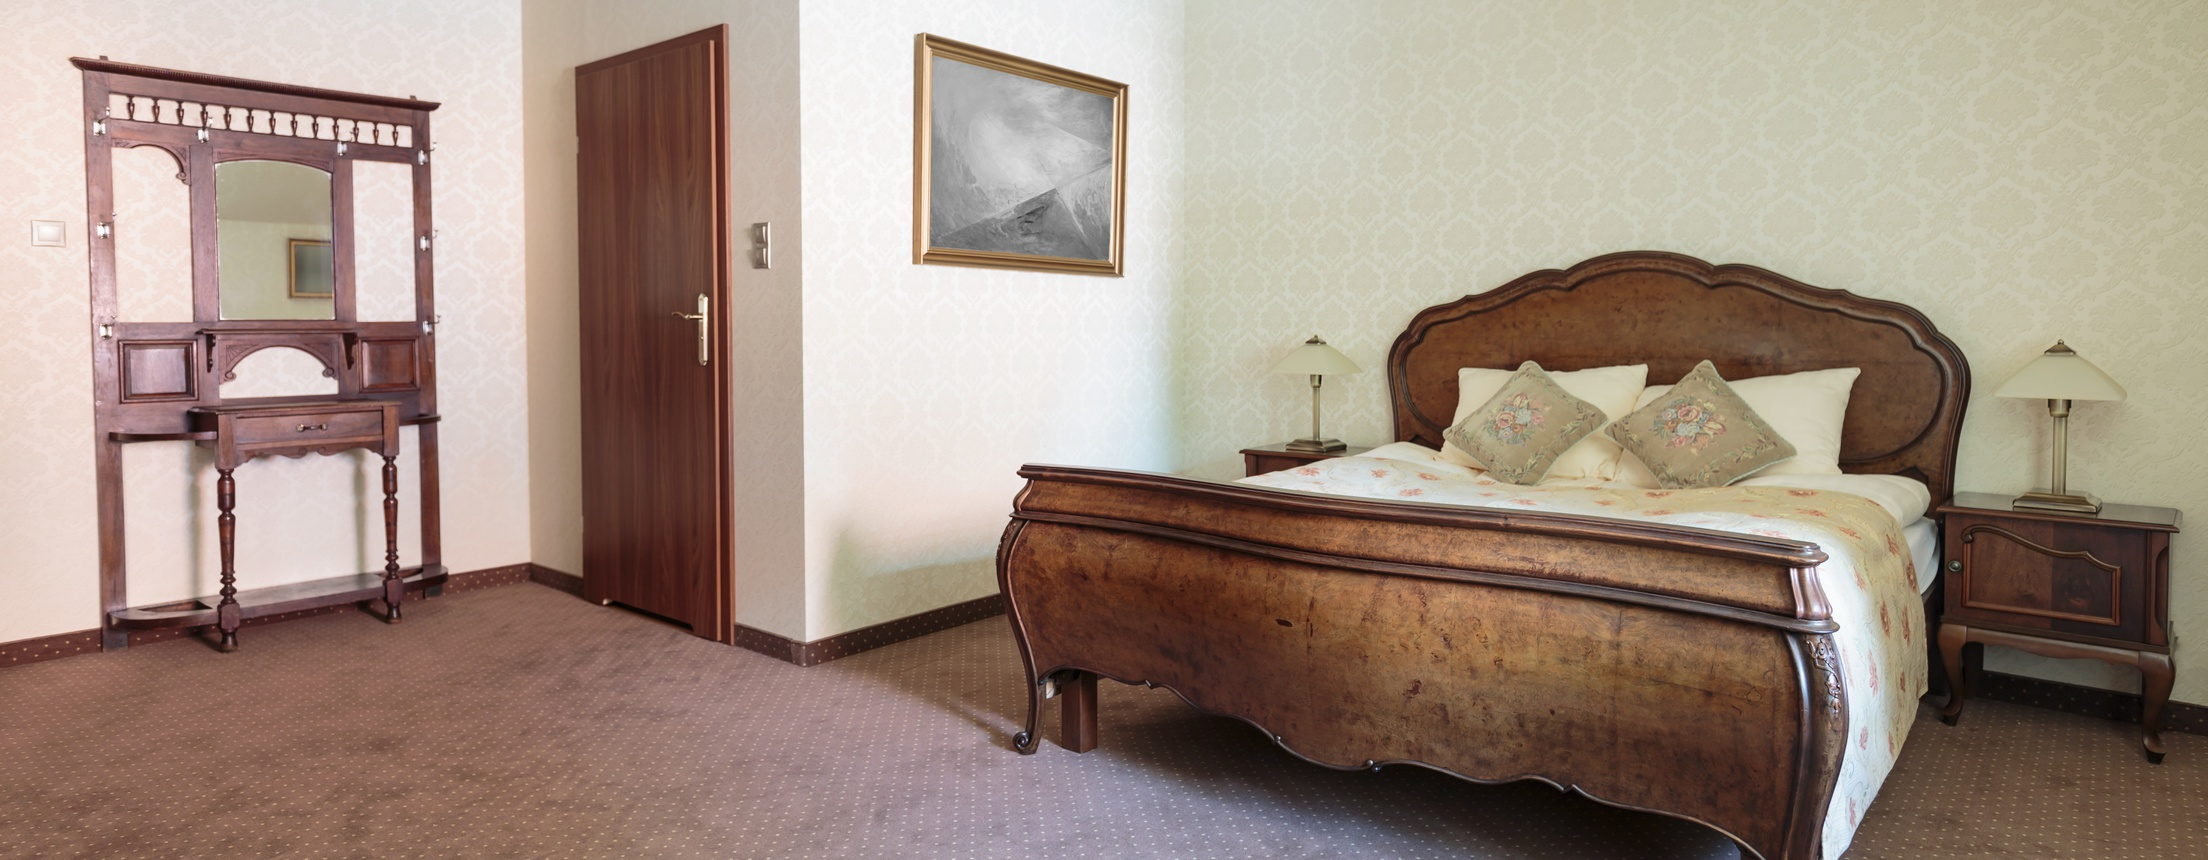 Antique style furniture in hotel double bed room